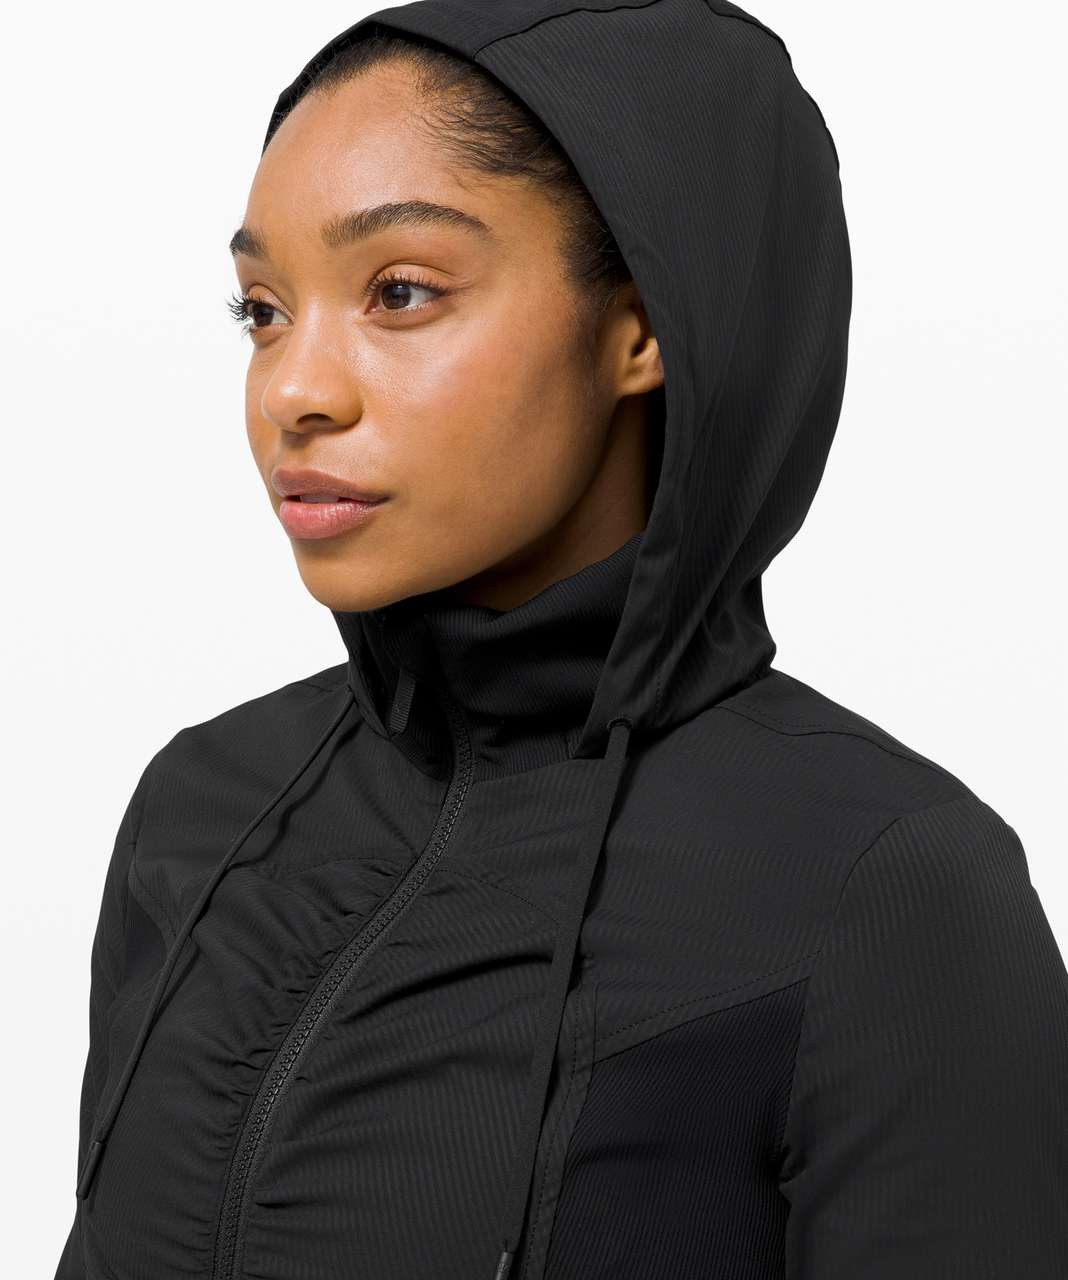 Lululemon Beyond the Studio Jacket - Black